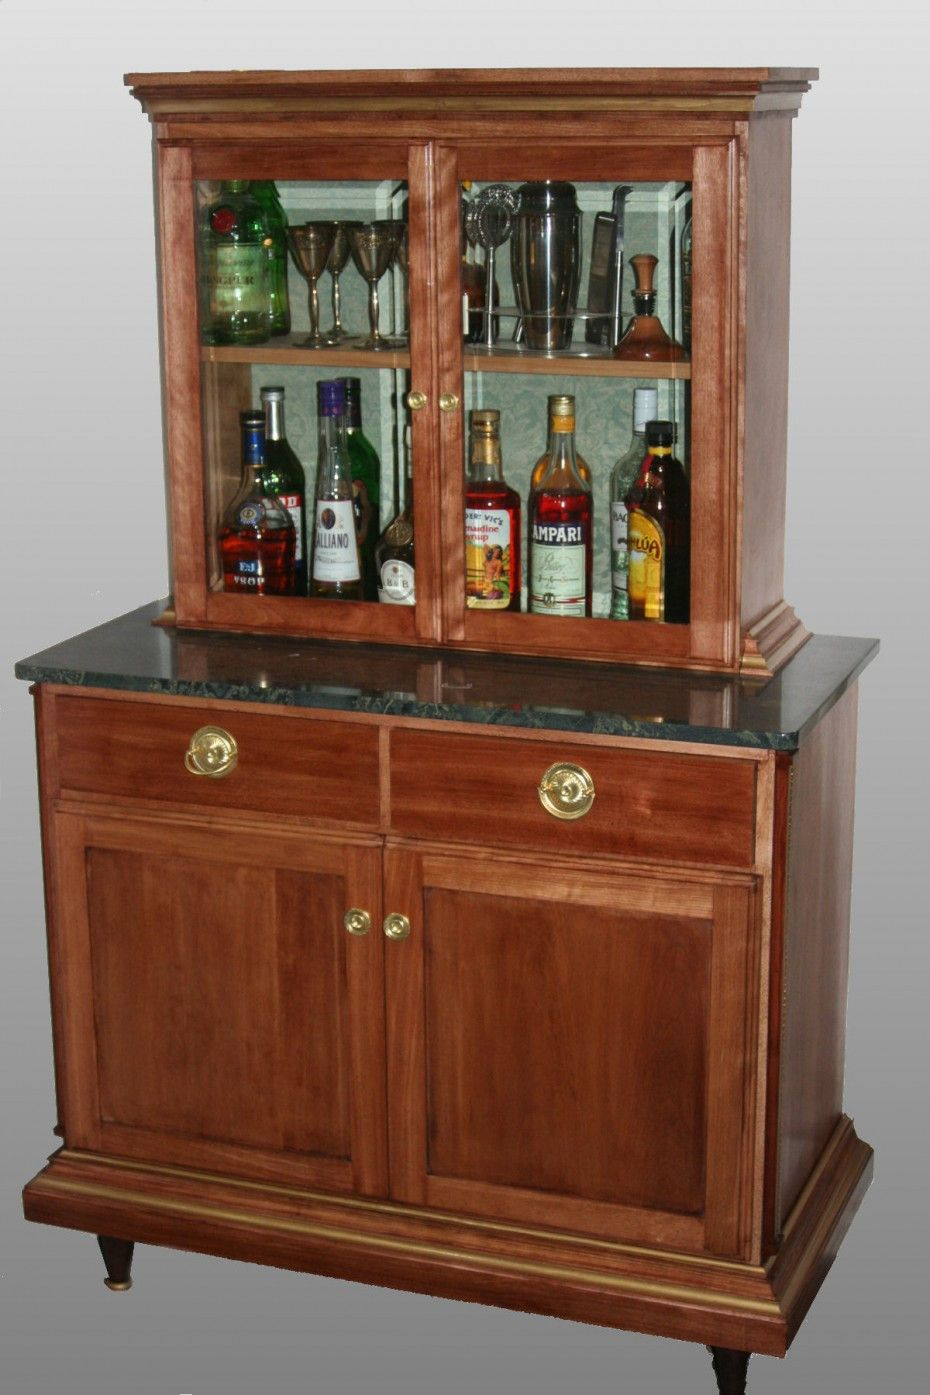 2019 Antique Liquor Cabinet Furniture Kitchen Inserts Ideas Check More At Http